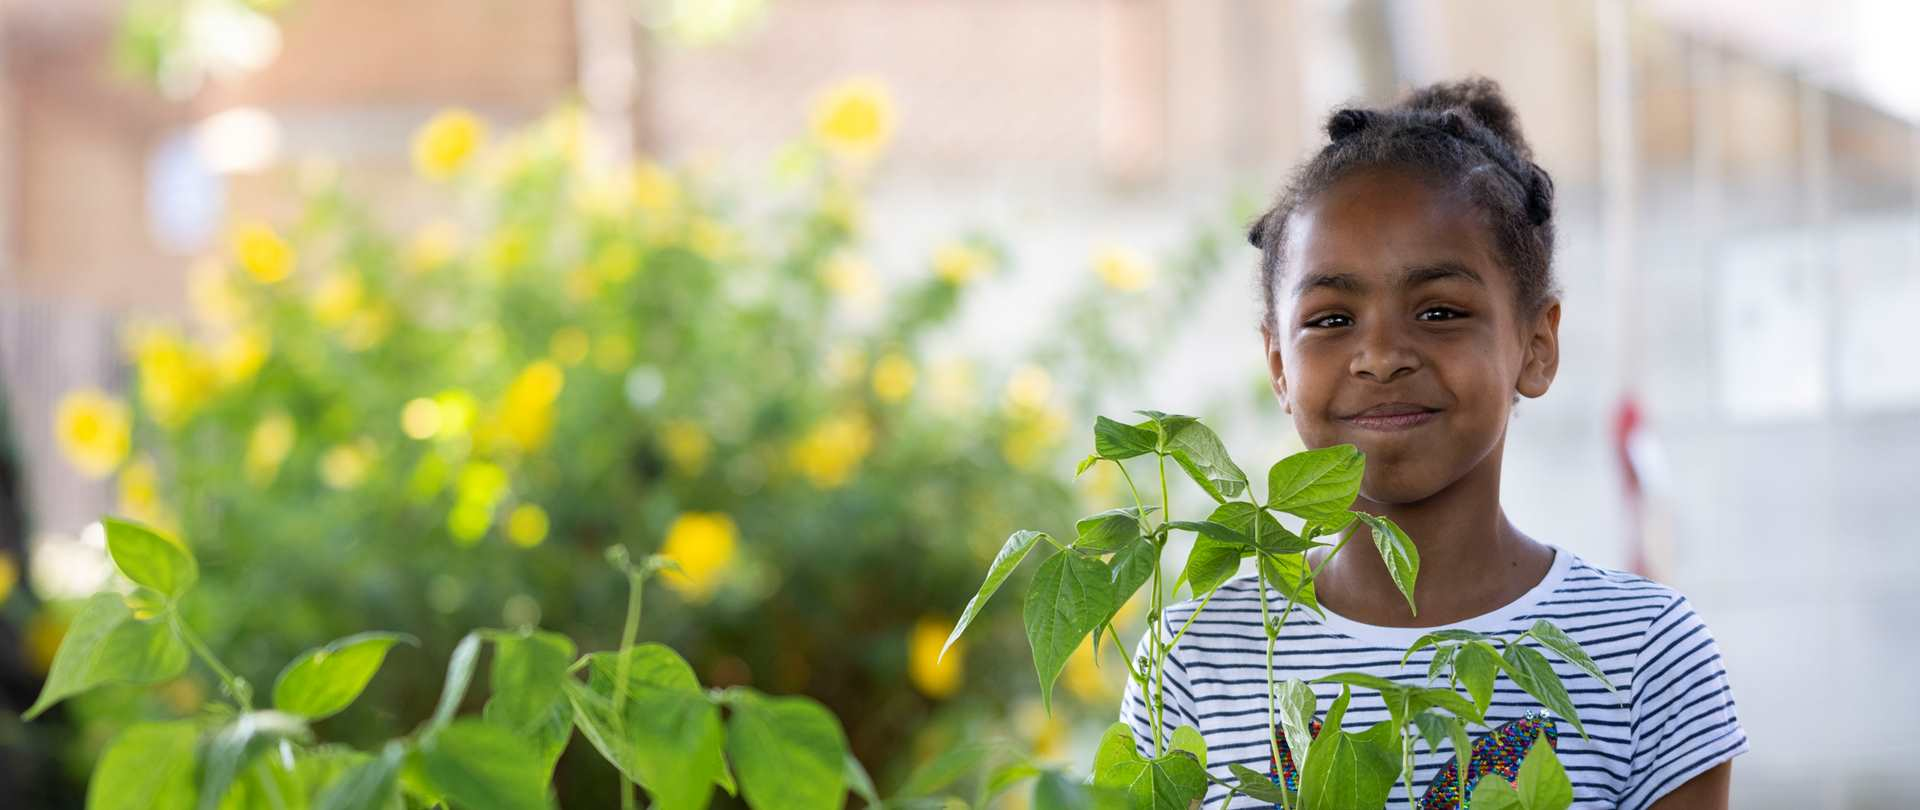 Child smiling in a greenhouse